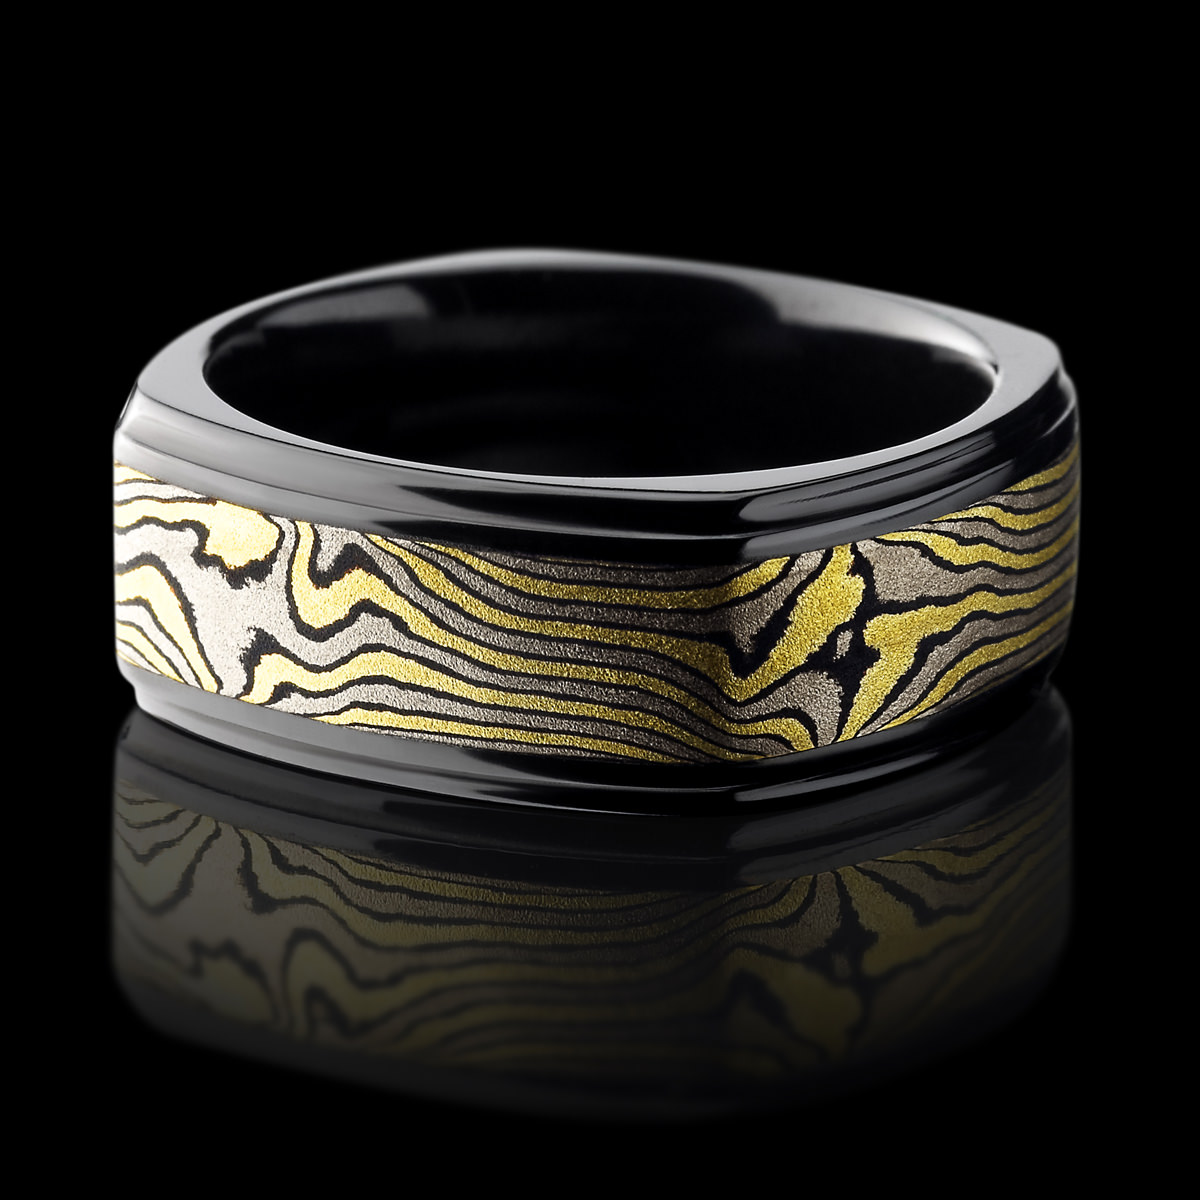 custom products titanium mokume rings gold rose gane and anodized sleeve ring made with damascus